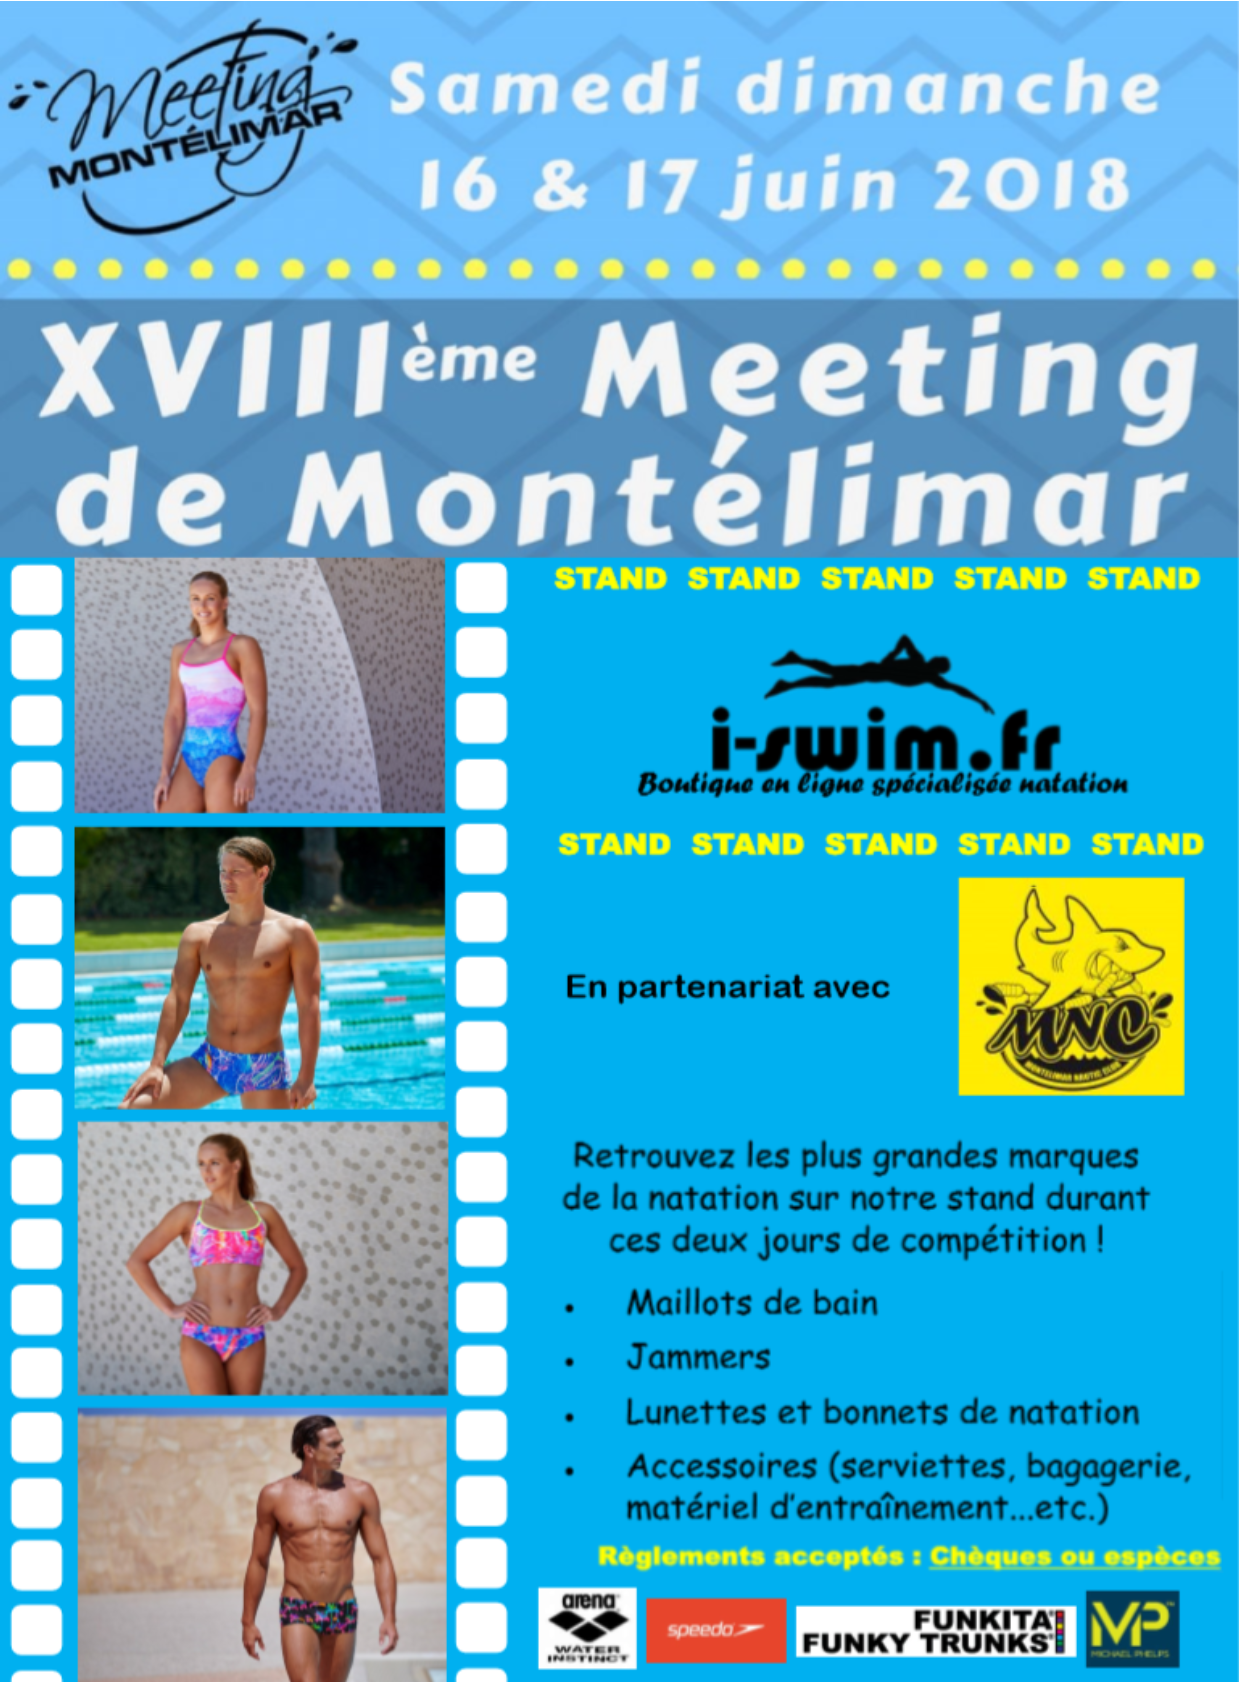 I swim fr meeting montelimar